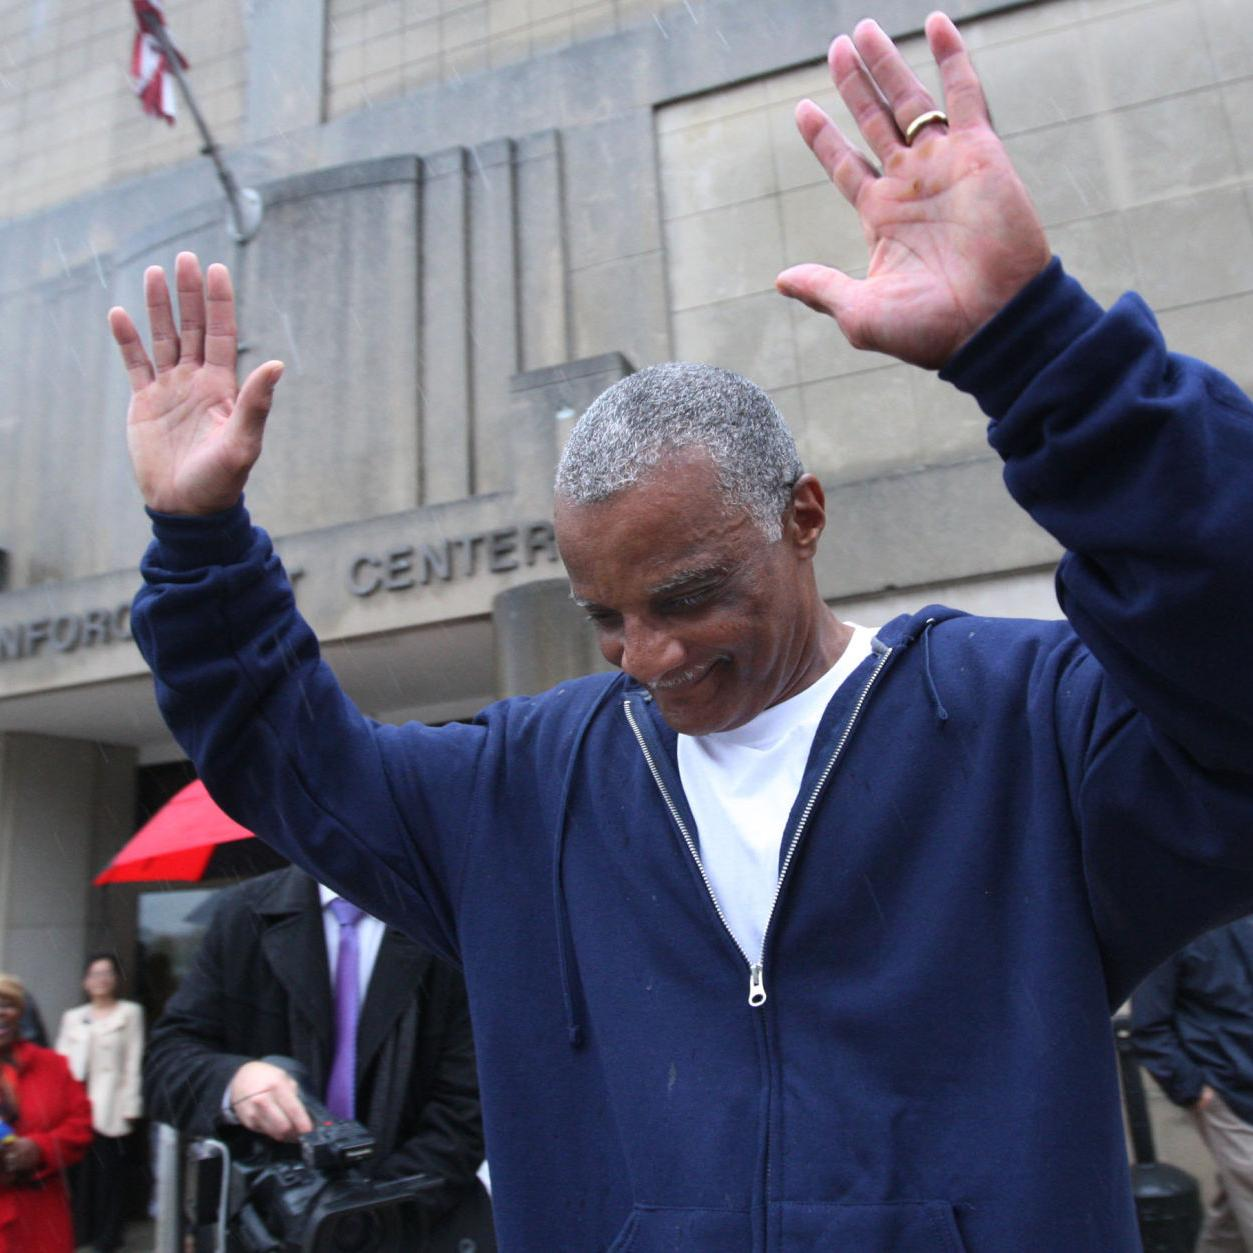 Man Freed After Wrongful Murder Conviction Crime And Courts